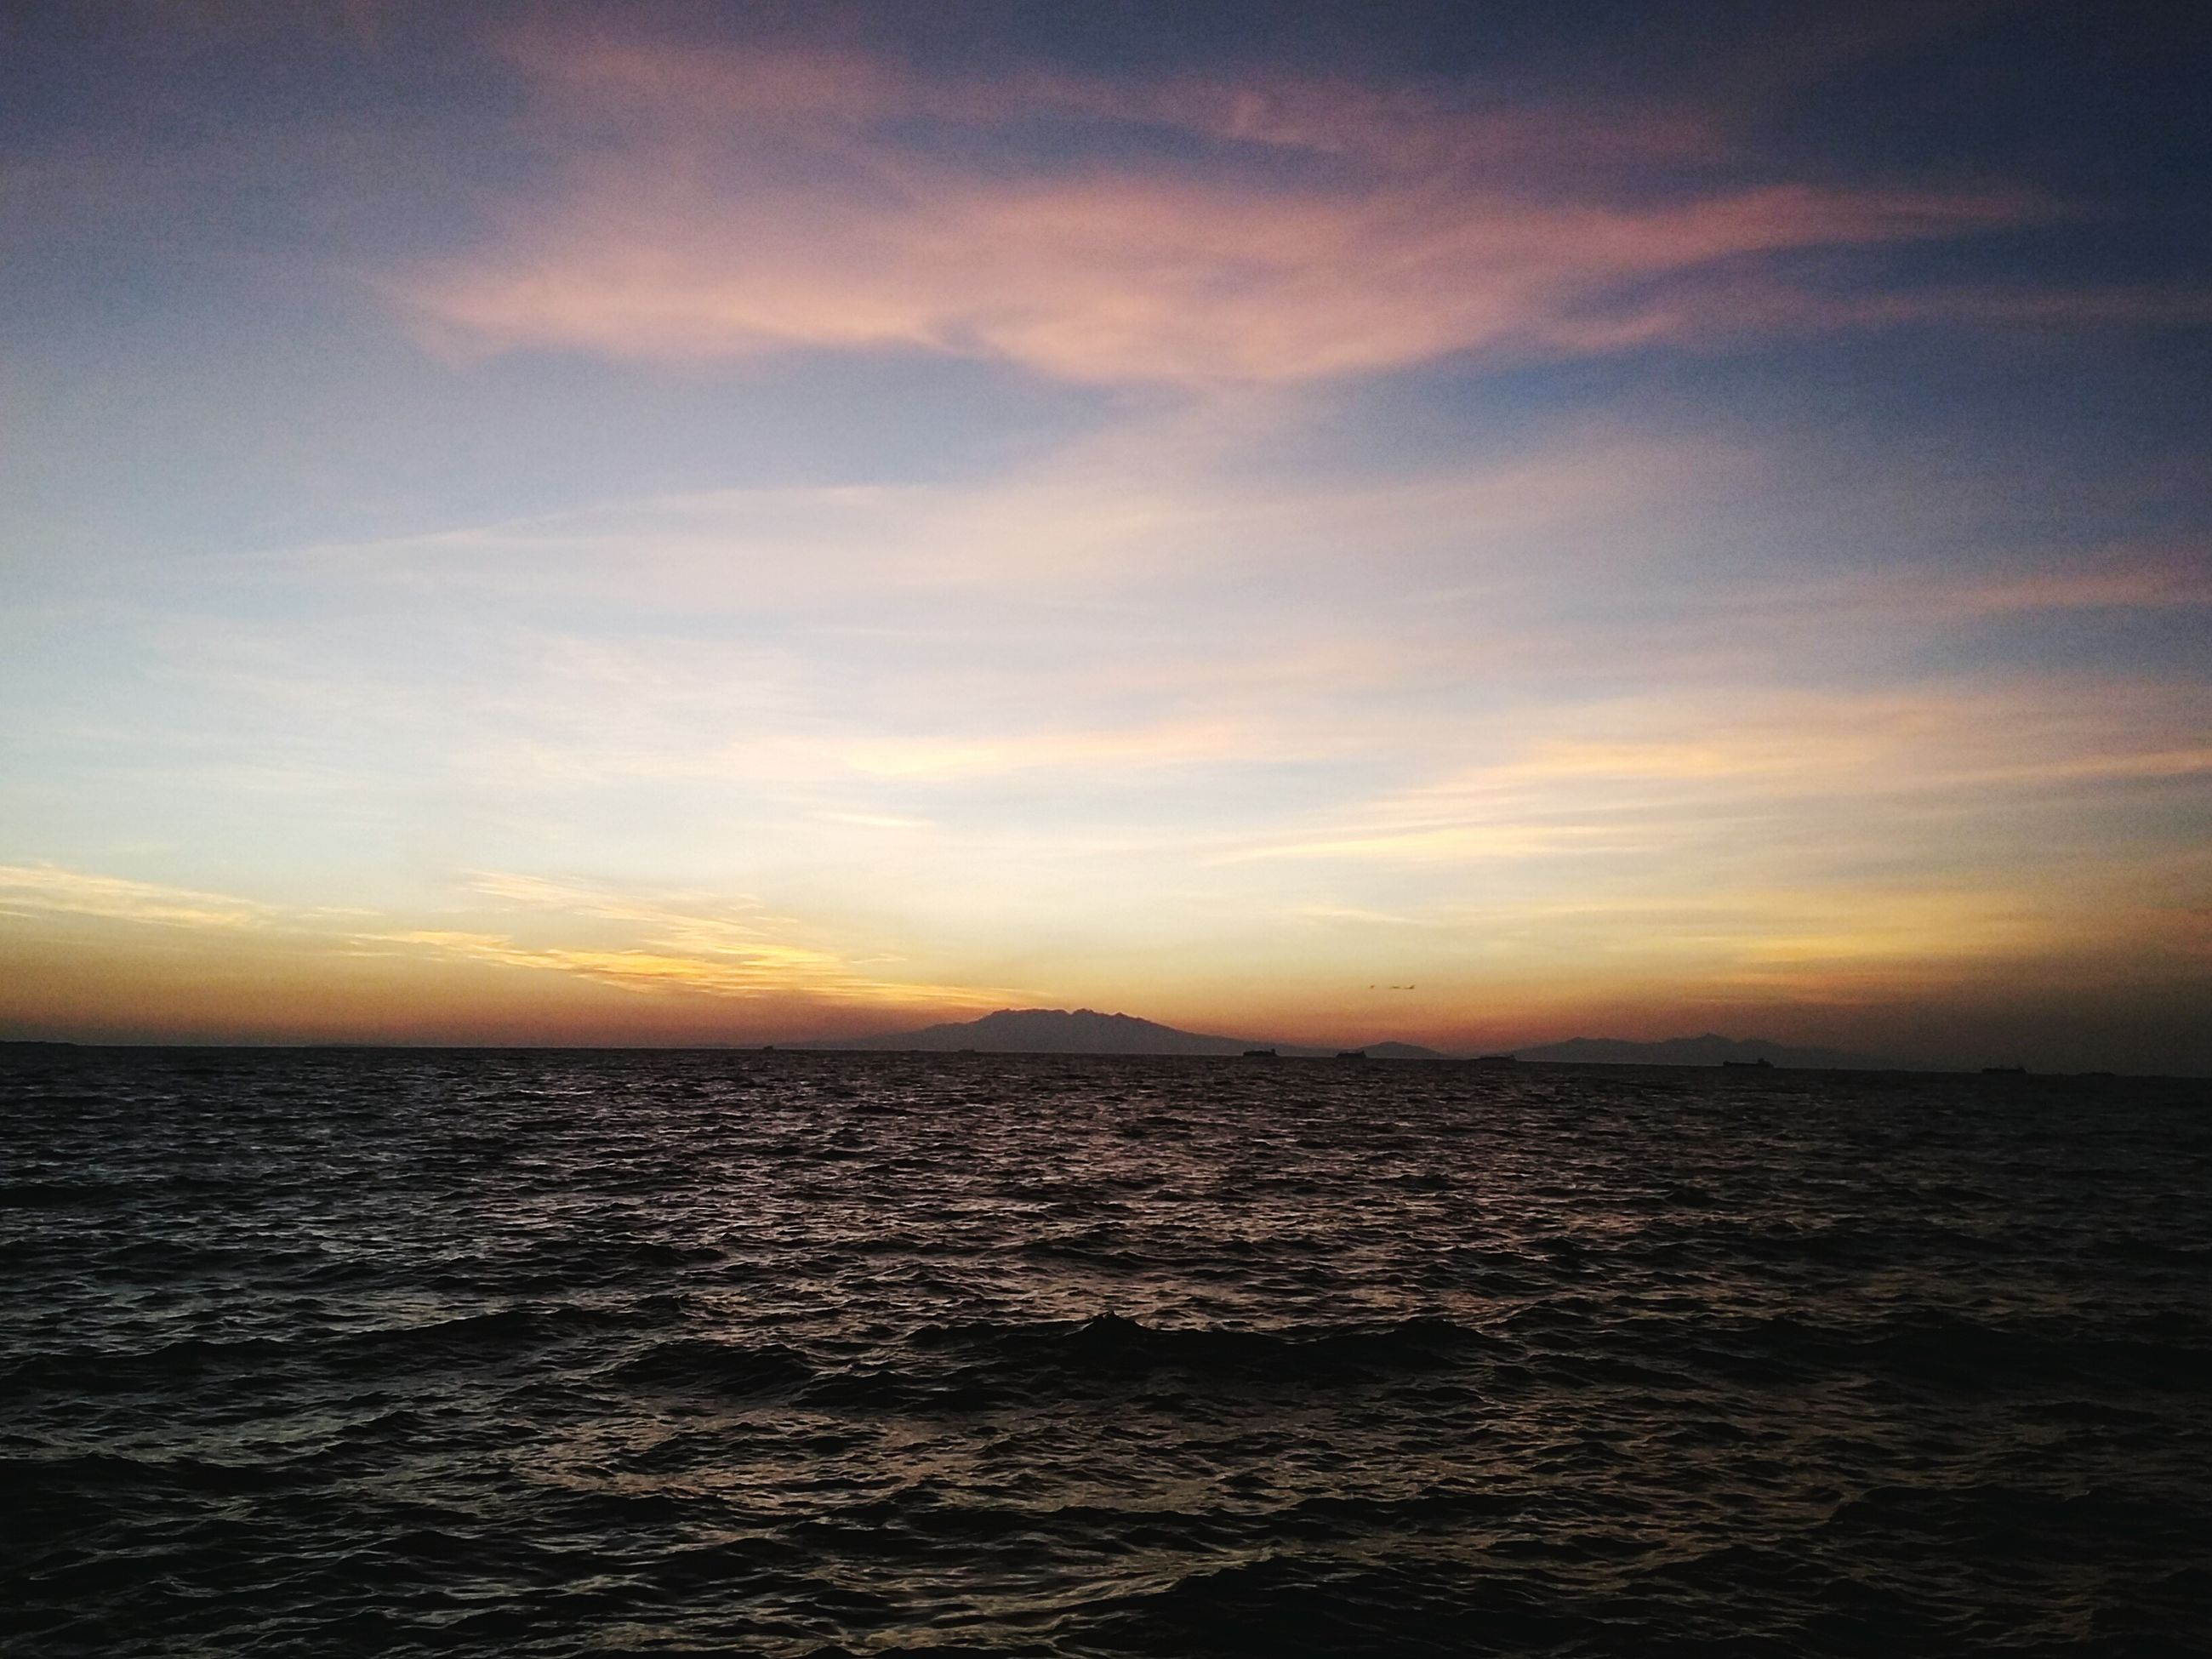 sea, water, waterfront, horizon over water, scenics, tranquil scene, sky, beauty in nature, tranquility, sunset, rippled, nature, idyllic, seascape, cloud - sky, cloud, outdoors, no people, ocean, cloudy